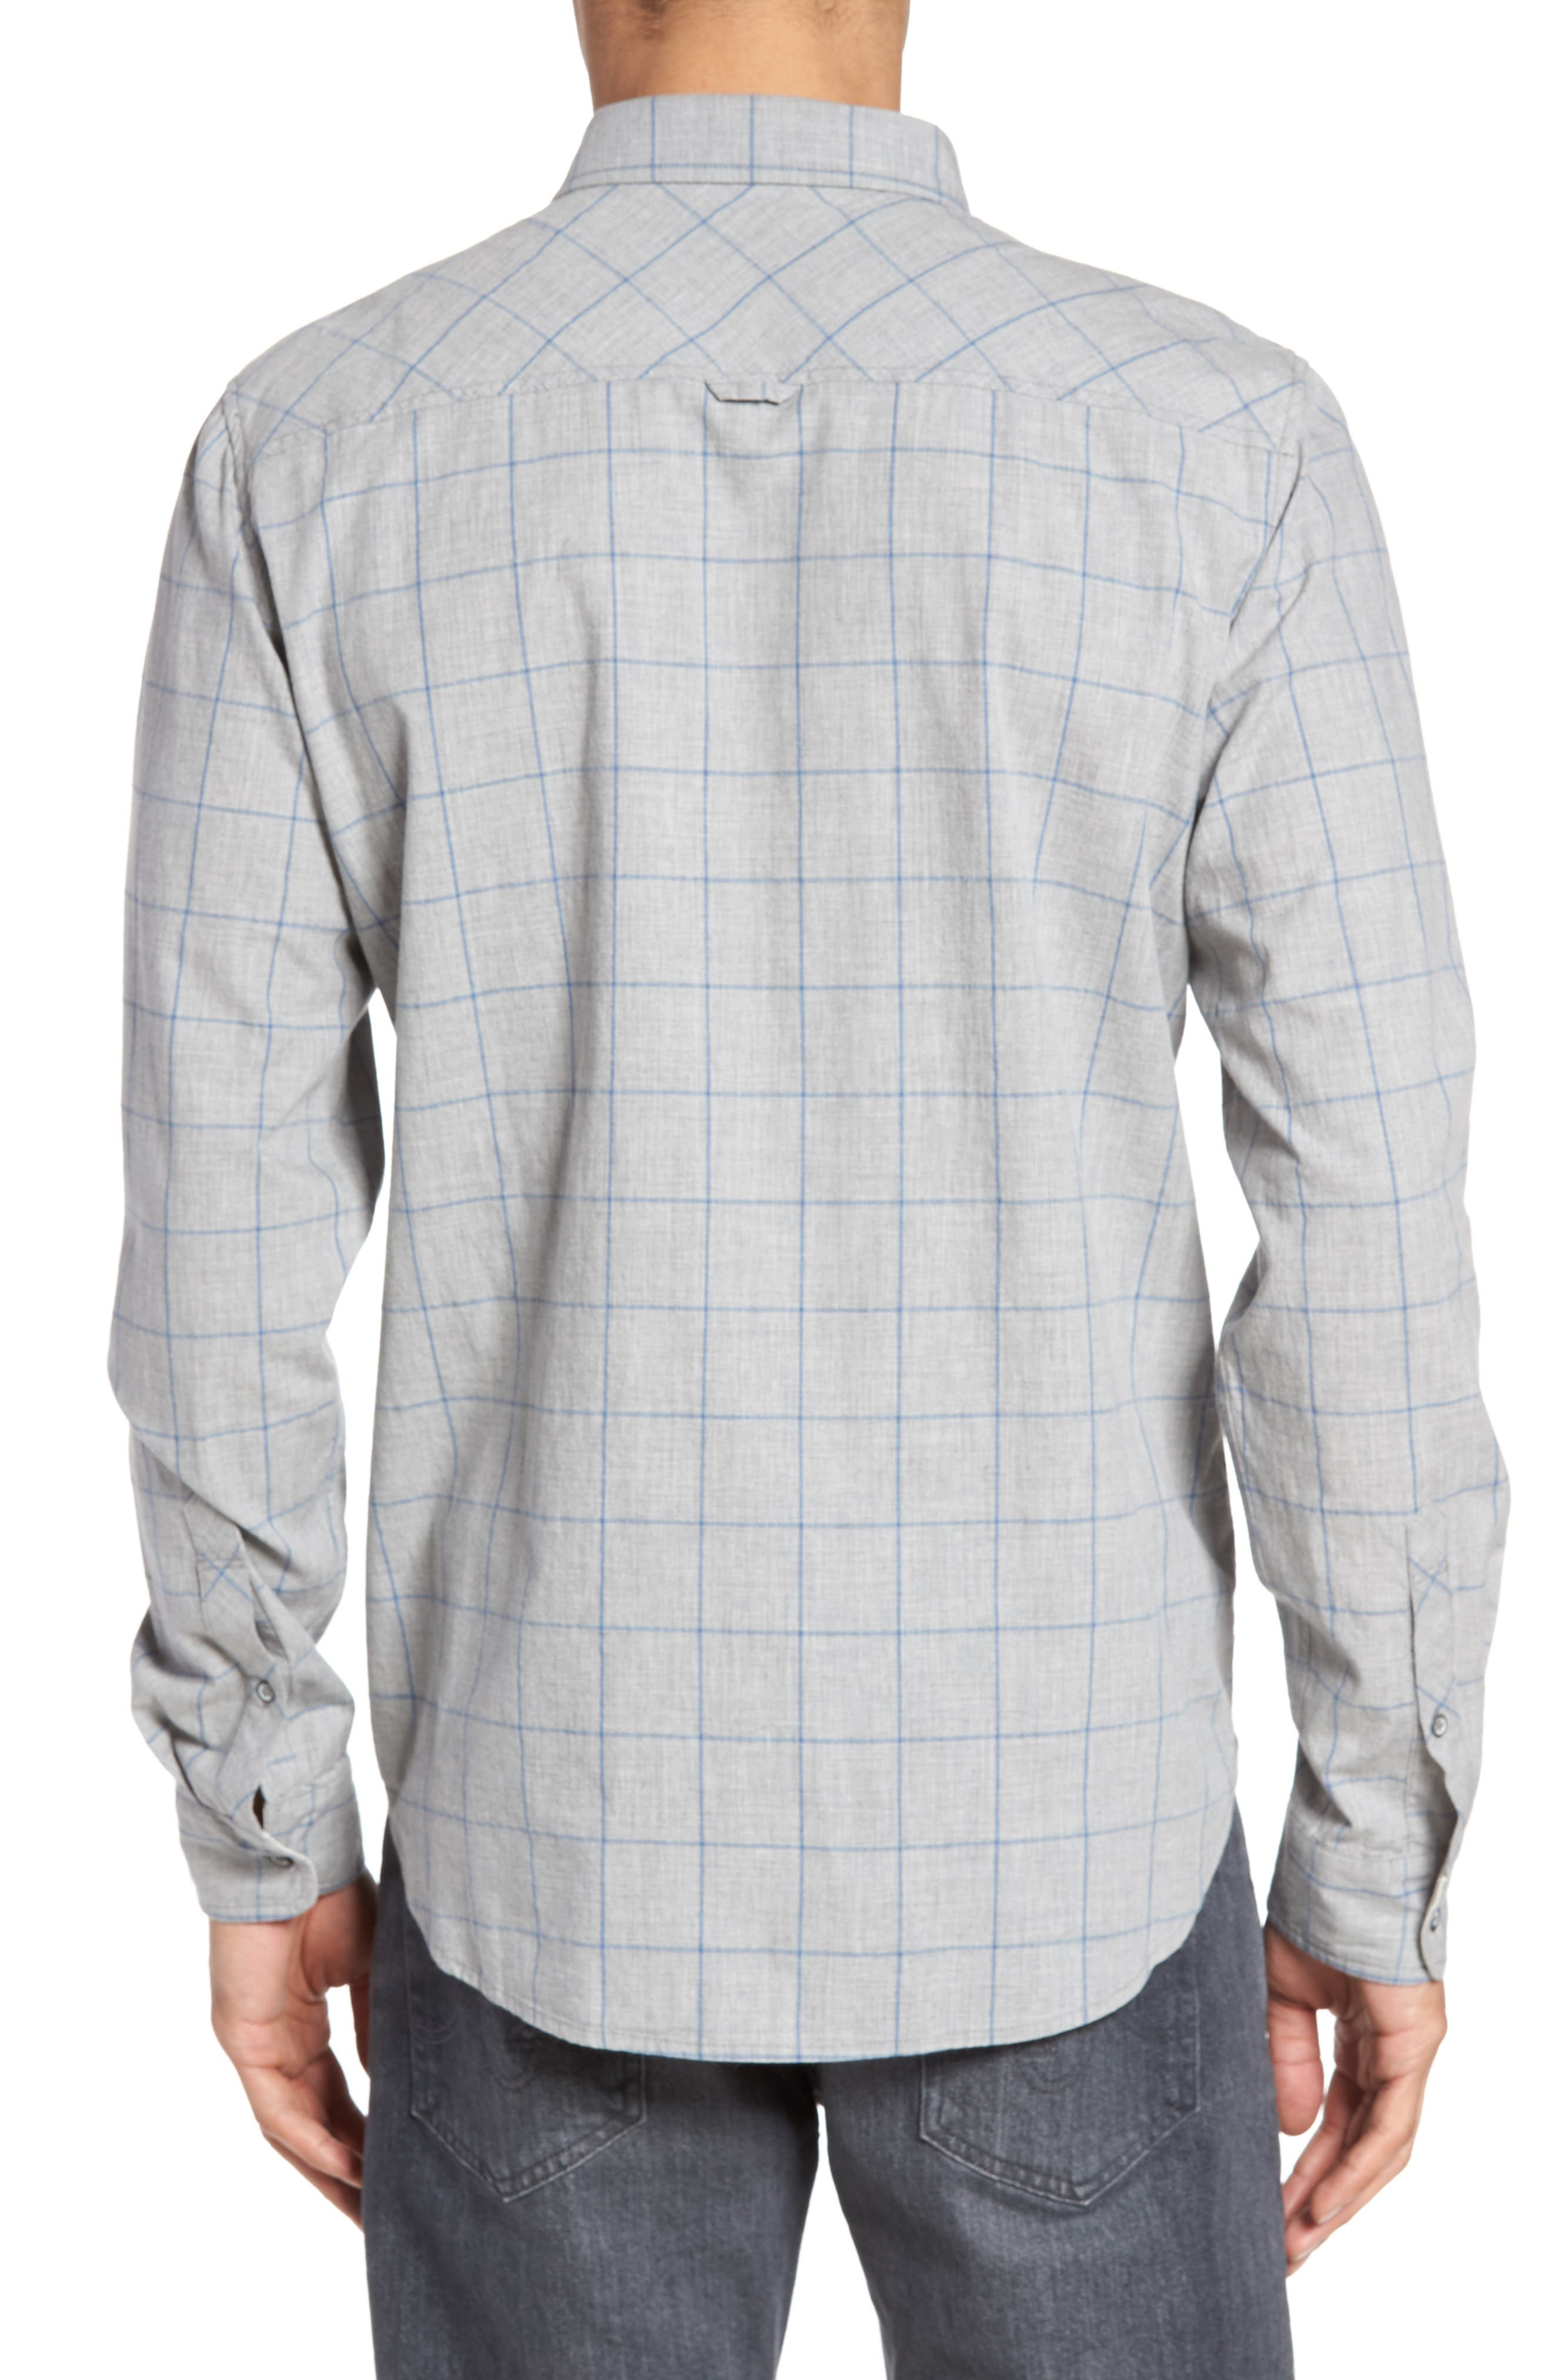 Grady Cotton Sport Shirt,                             Alternate thumbnail 2, color,                             087